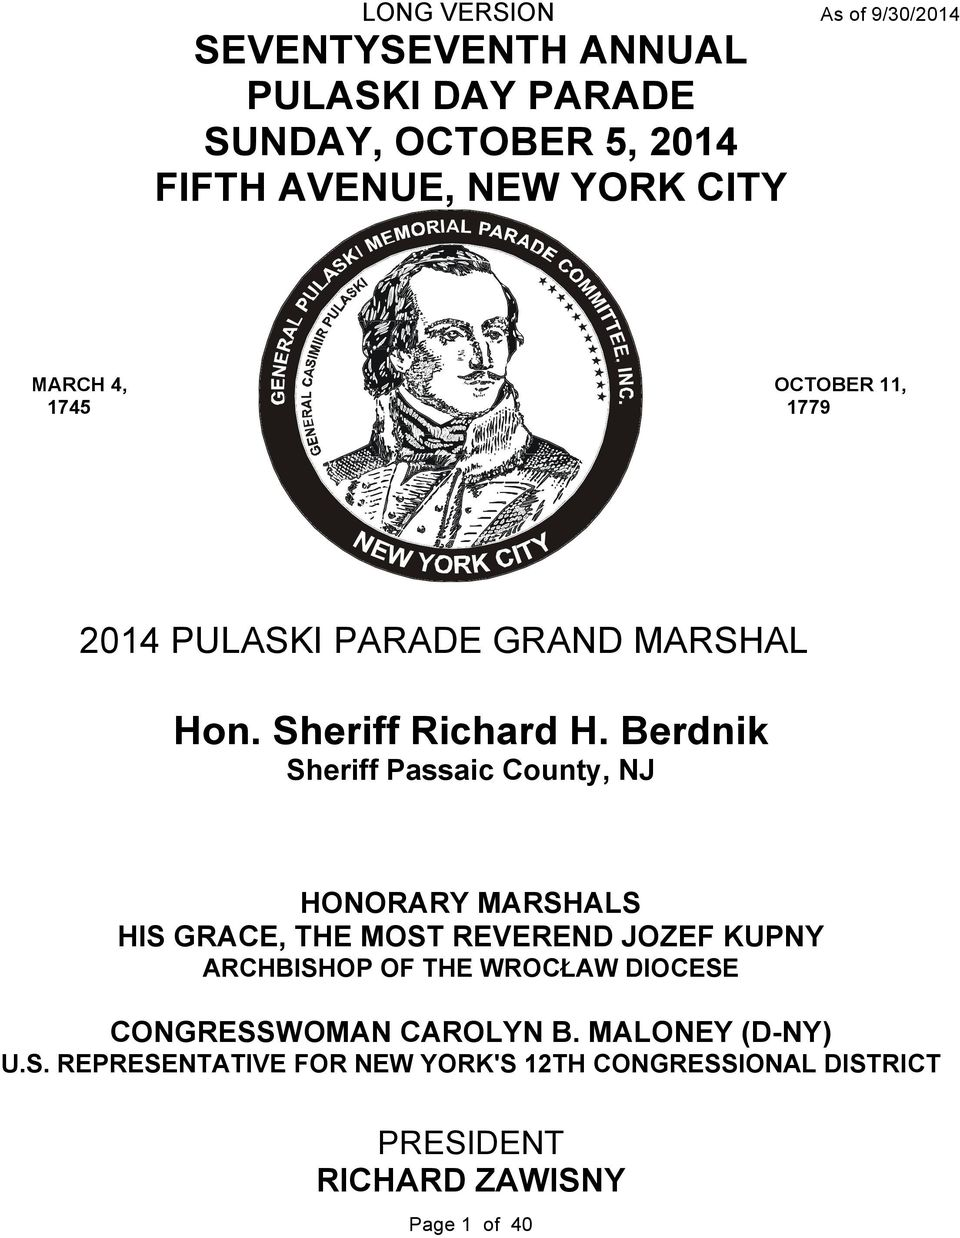 Berdnik Sheriff Passaic County, NJ HONORARY MARSHALS HIS GRACE, THE MOST REVEREND JOZEF KUPNY ARCHBISHOP OF THE